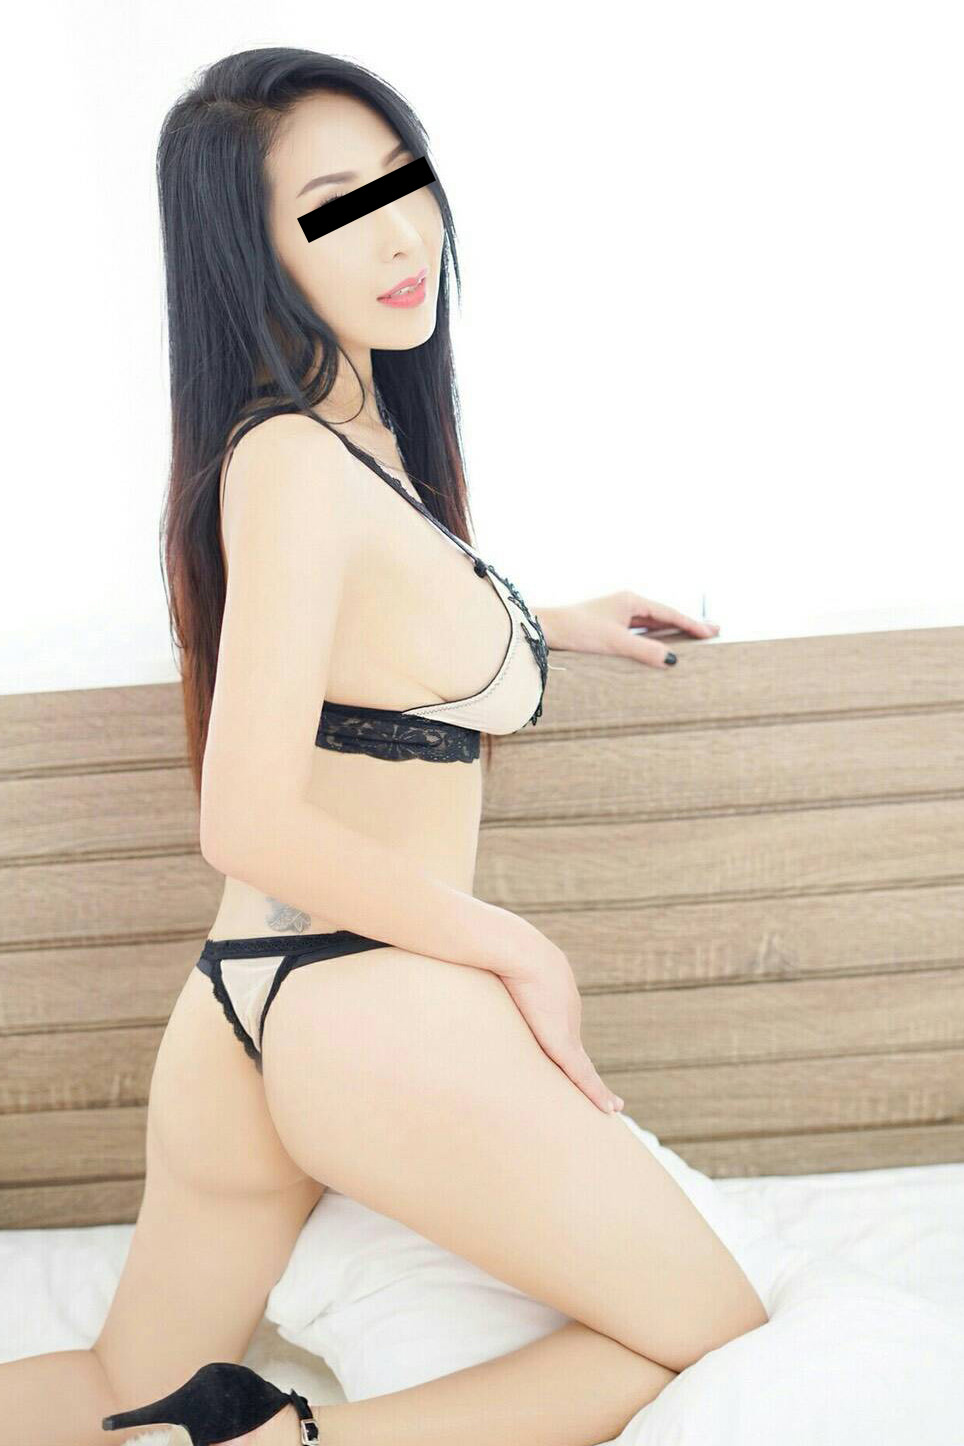 stroking bangkok escort independent